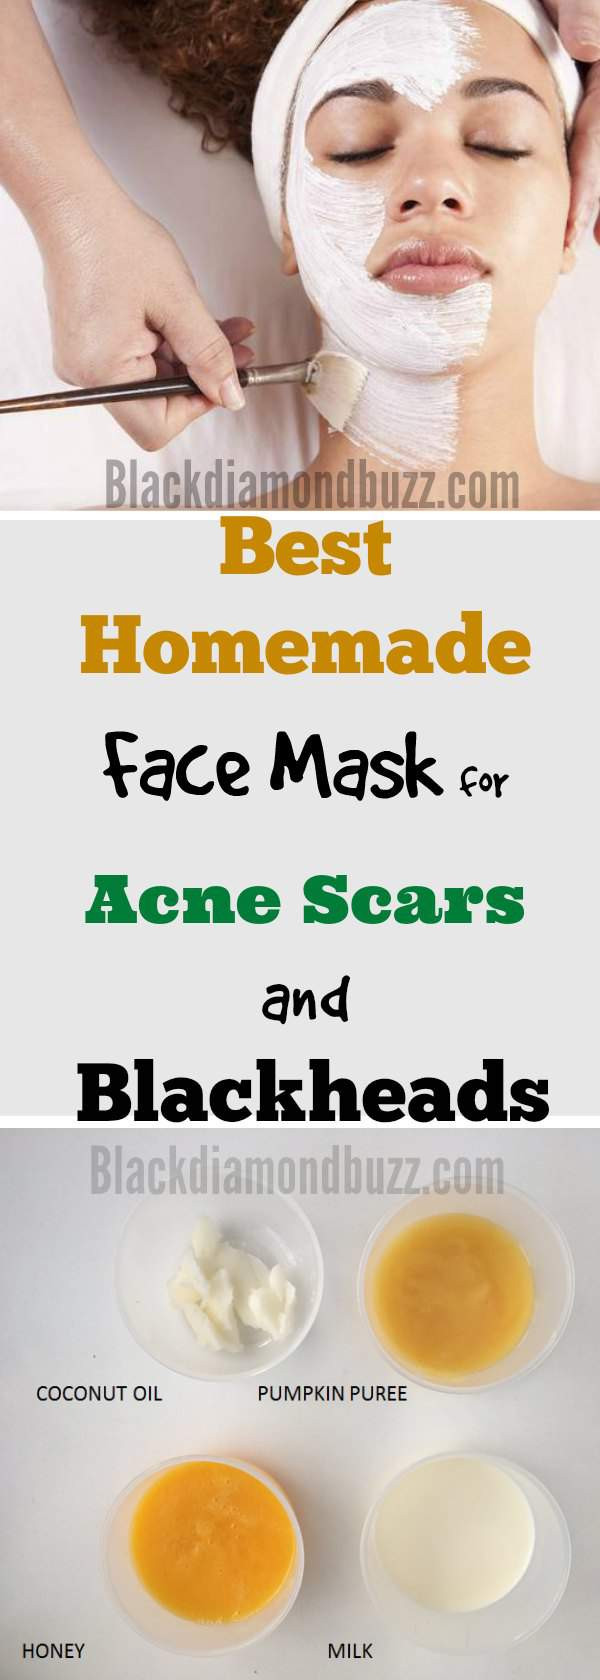 Best ideas about DIY Face Mask For Acne Scars . Save or Pin Diy Honey Mask For Acne Scars Do It Your Self Now.